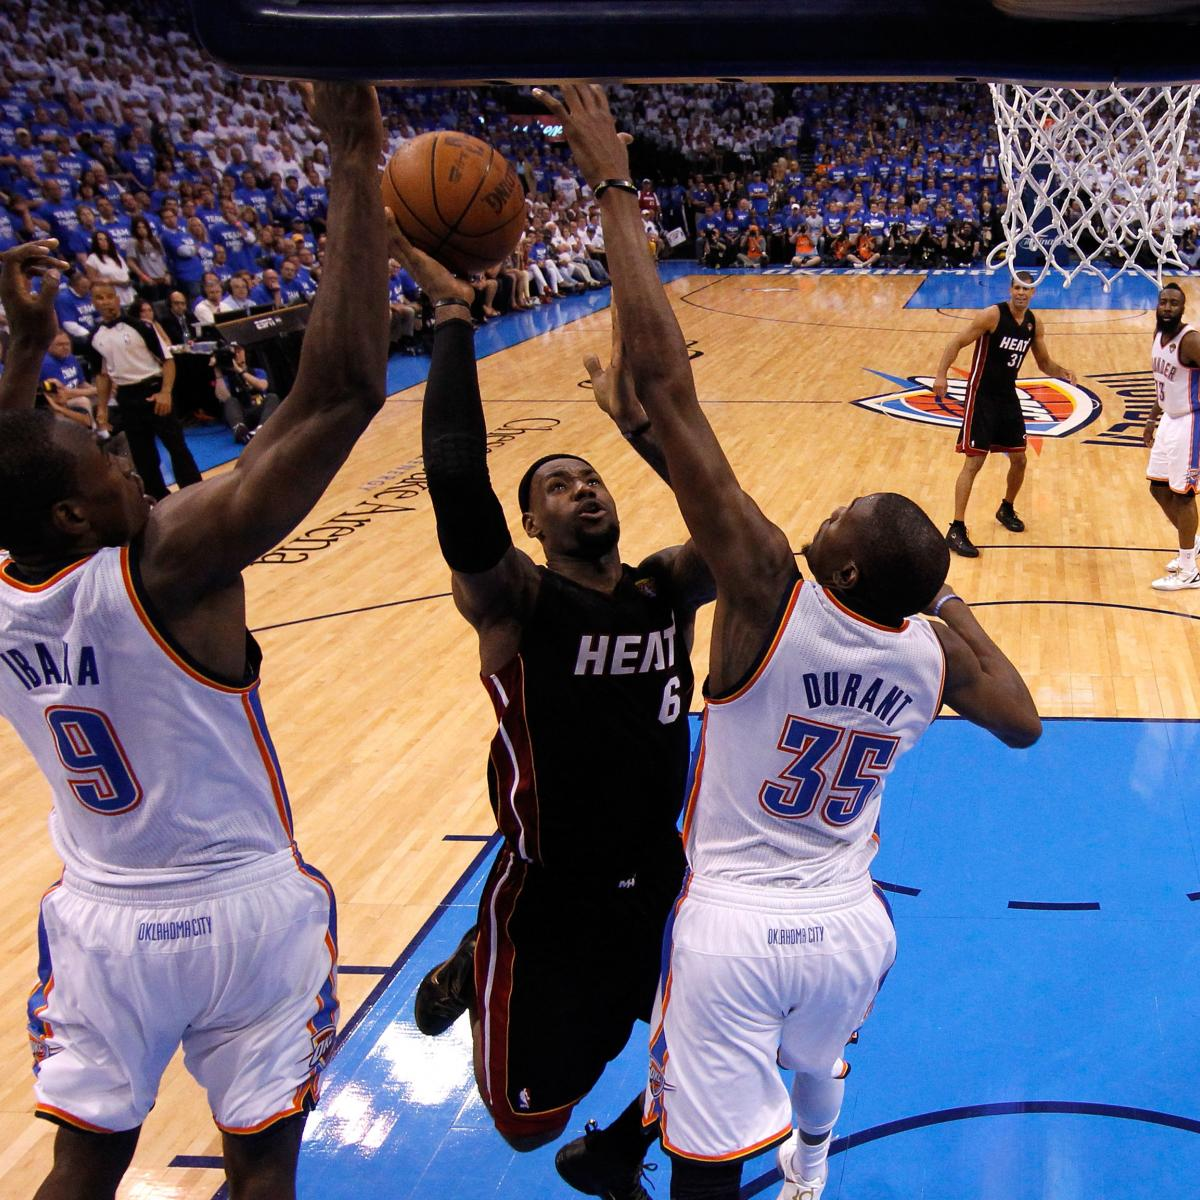 heat vs thunder game 2: factors that led to miami victory